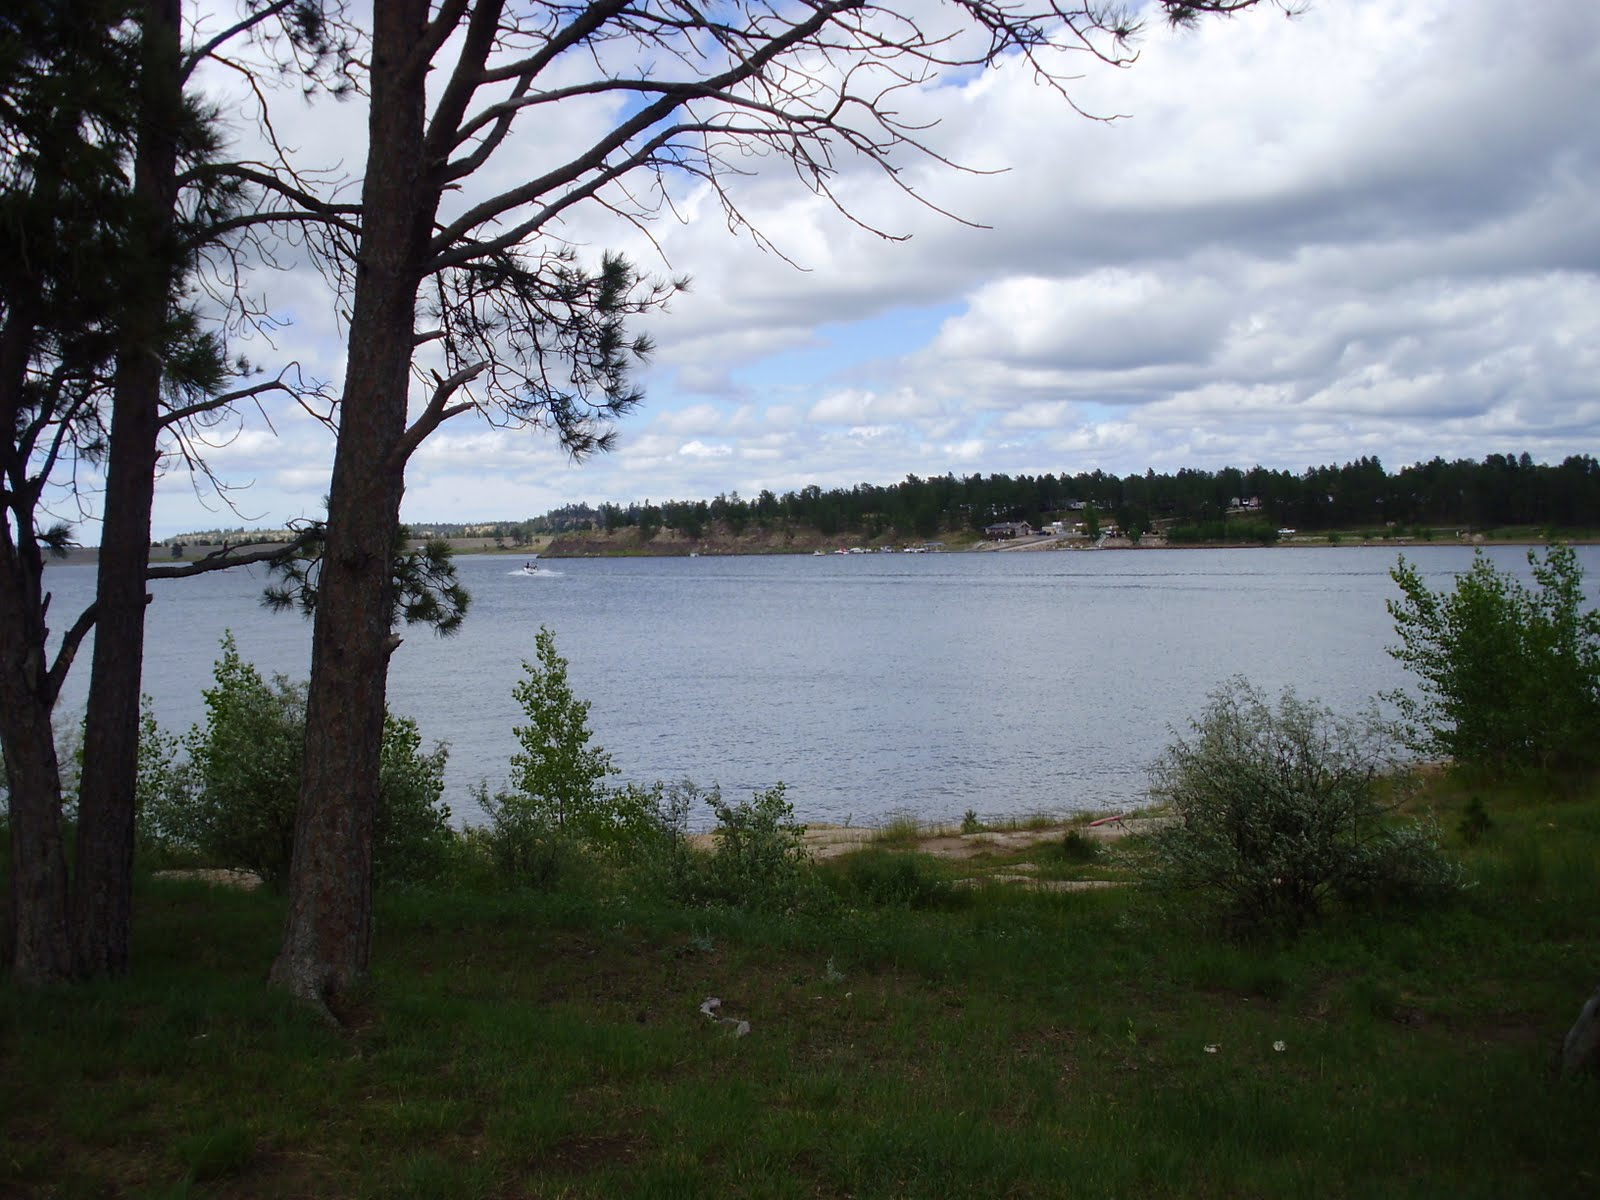 Swingers in pine haven wy Pine Haven Wyoming RV Campgrounds Best Sites, State Parks, Rental, Sale